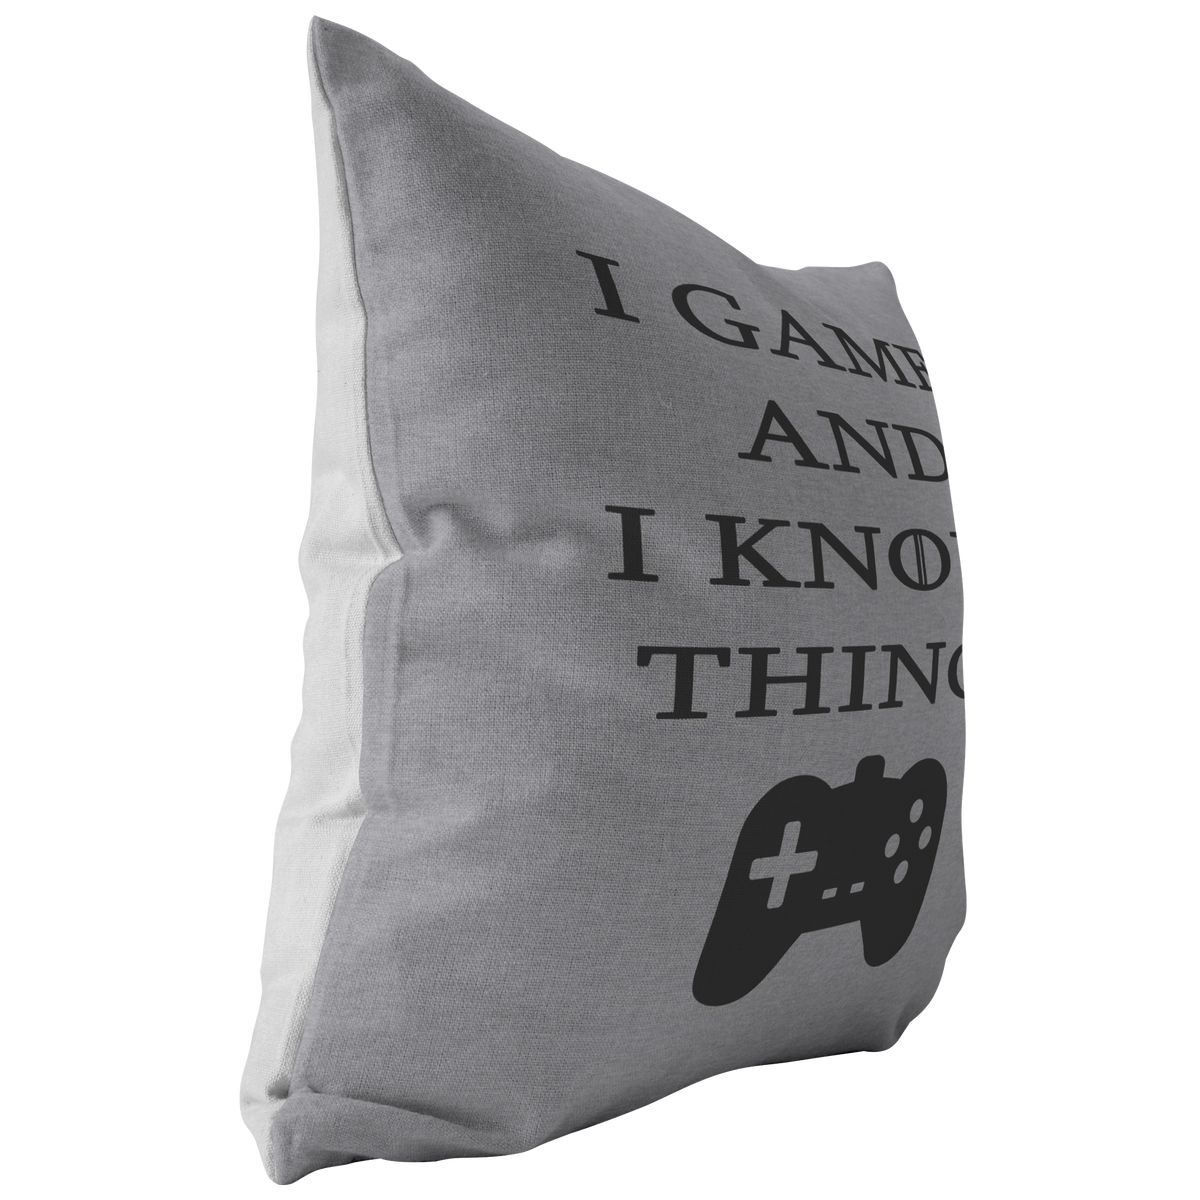 Gamers Gift I Game And I Know Things Throw Pillow